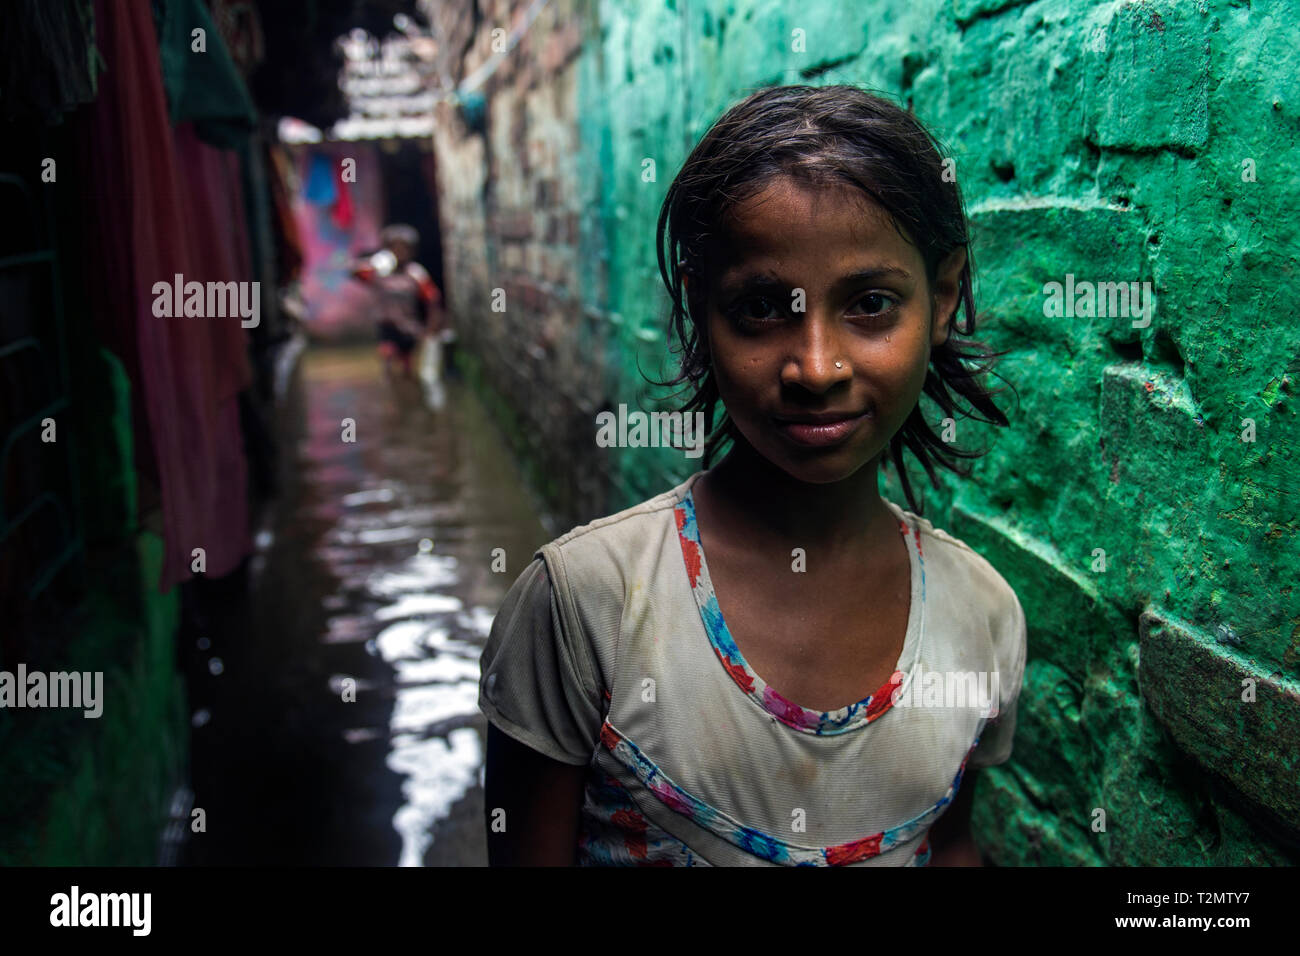 I took this picture few years ago in a narrow alley of Howrah, after a heavy rainfall. Their waterlogged condition was terrible to describe. Stock Photo